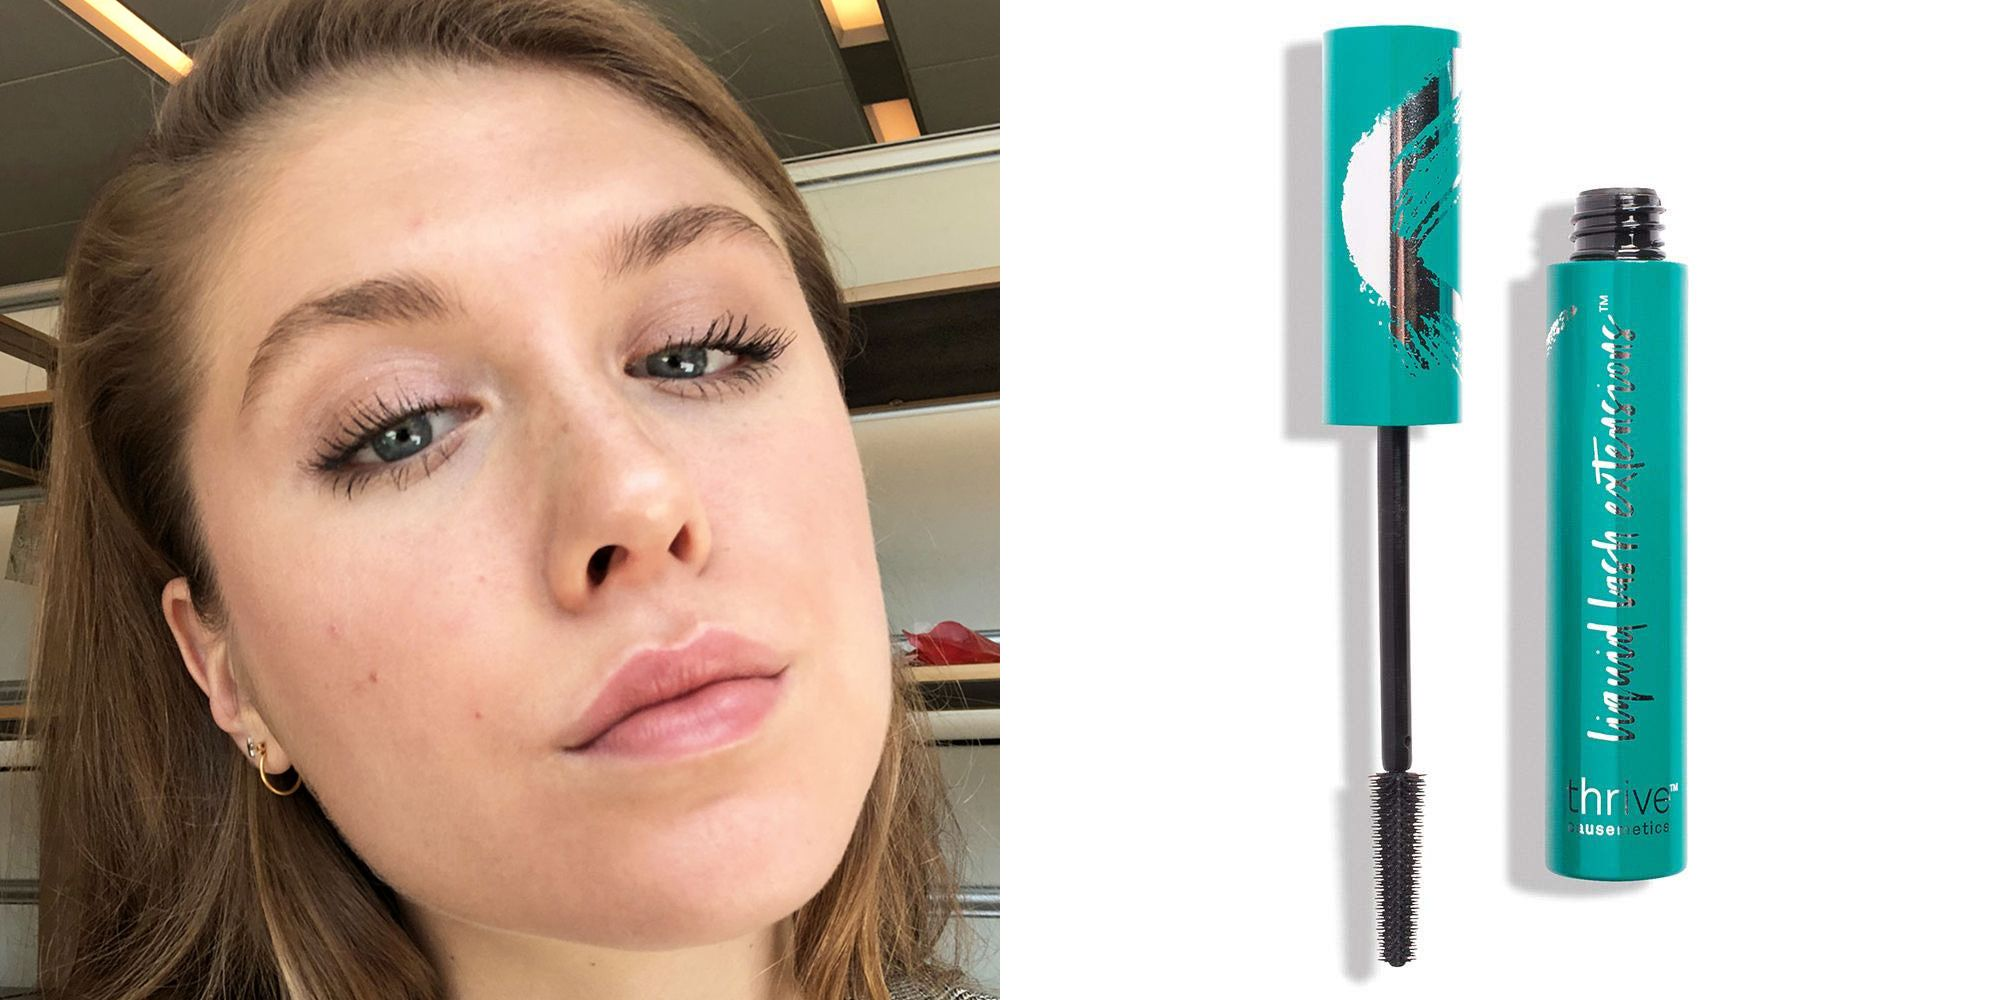 I Reviewed Thrive's Causemetics Mascara and the Pics Are Crazy